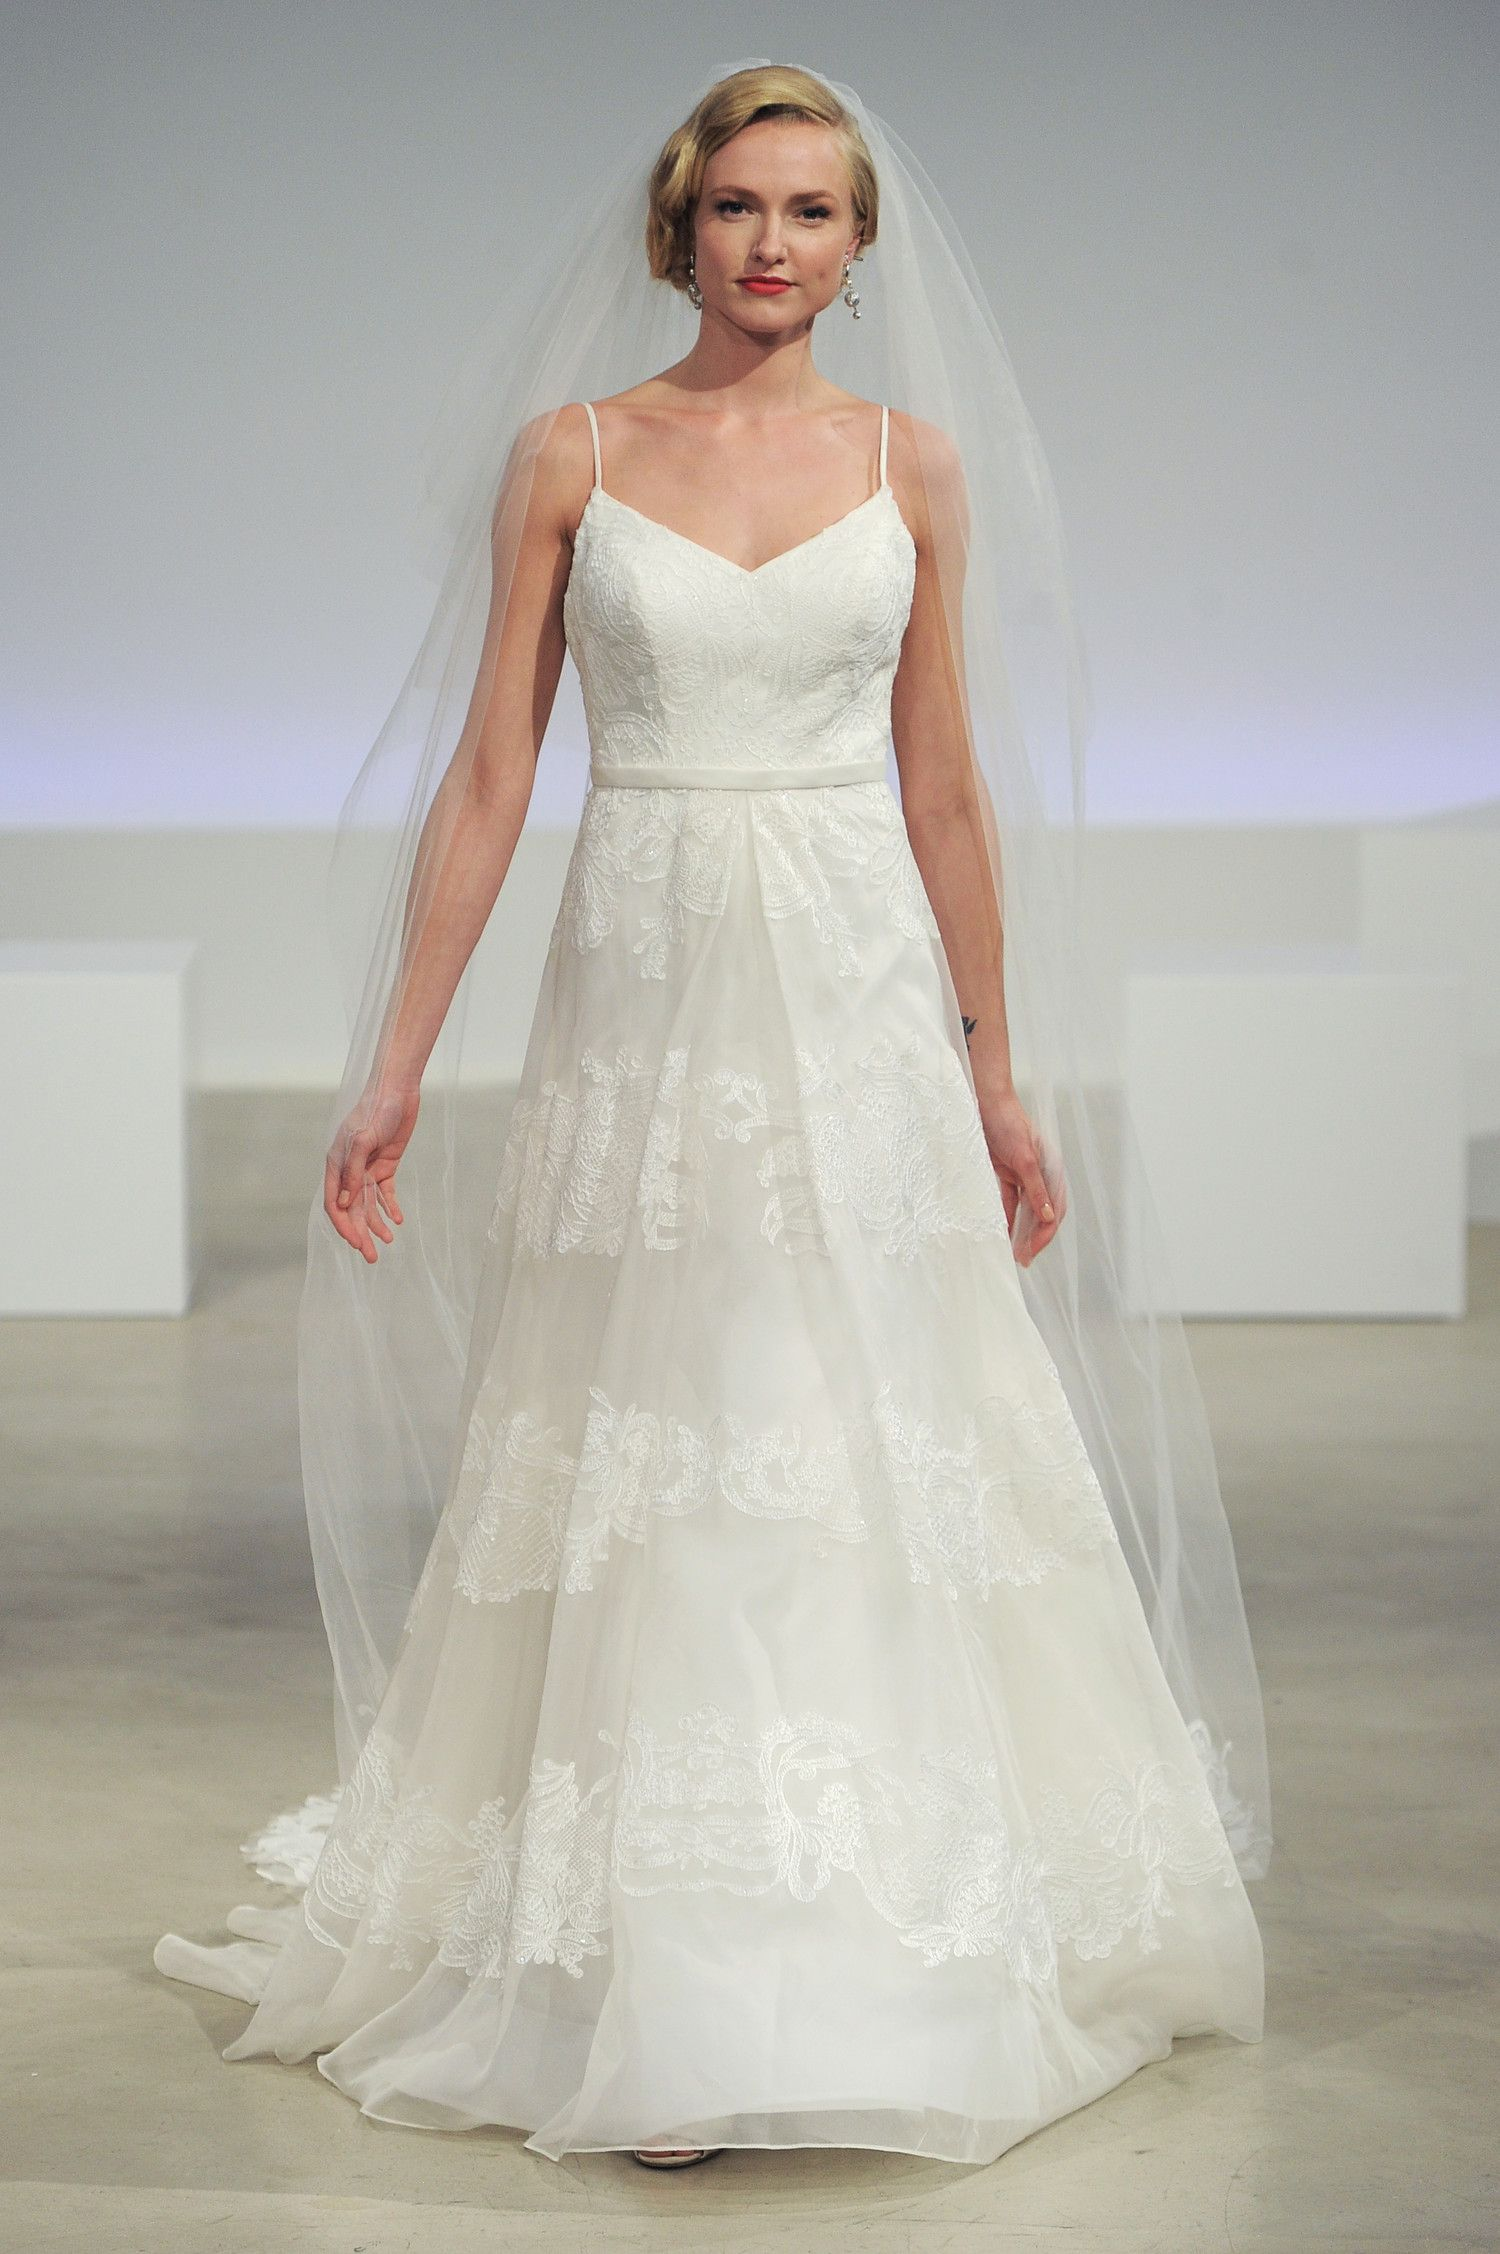 Simple Wedding Dresses That Are Just Plain Chic | Pinterest | Simple ...